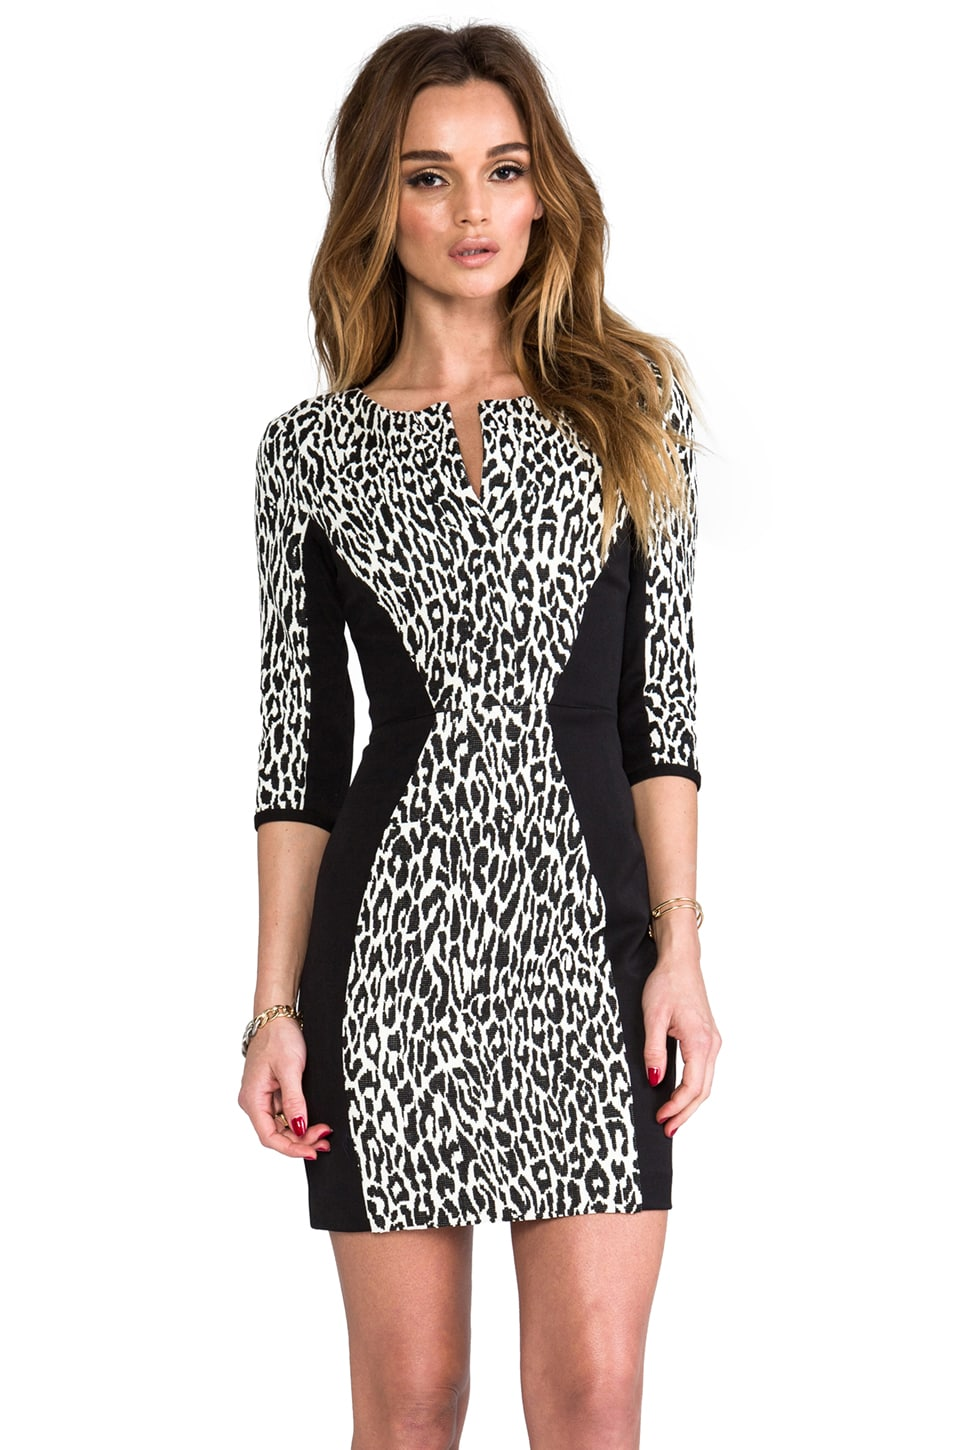 Black Halo Terri Mini Dress in Snow Leopard/Black